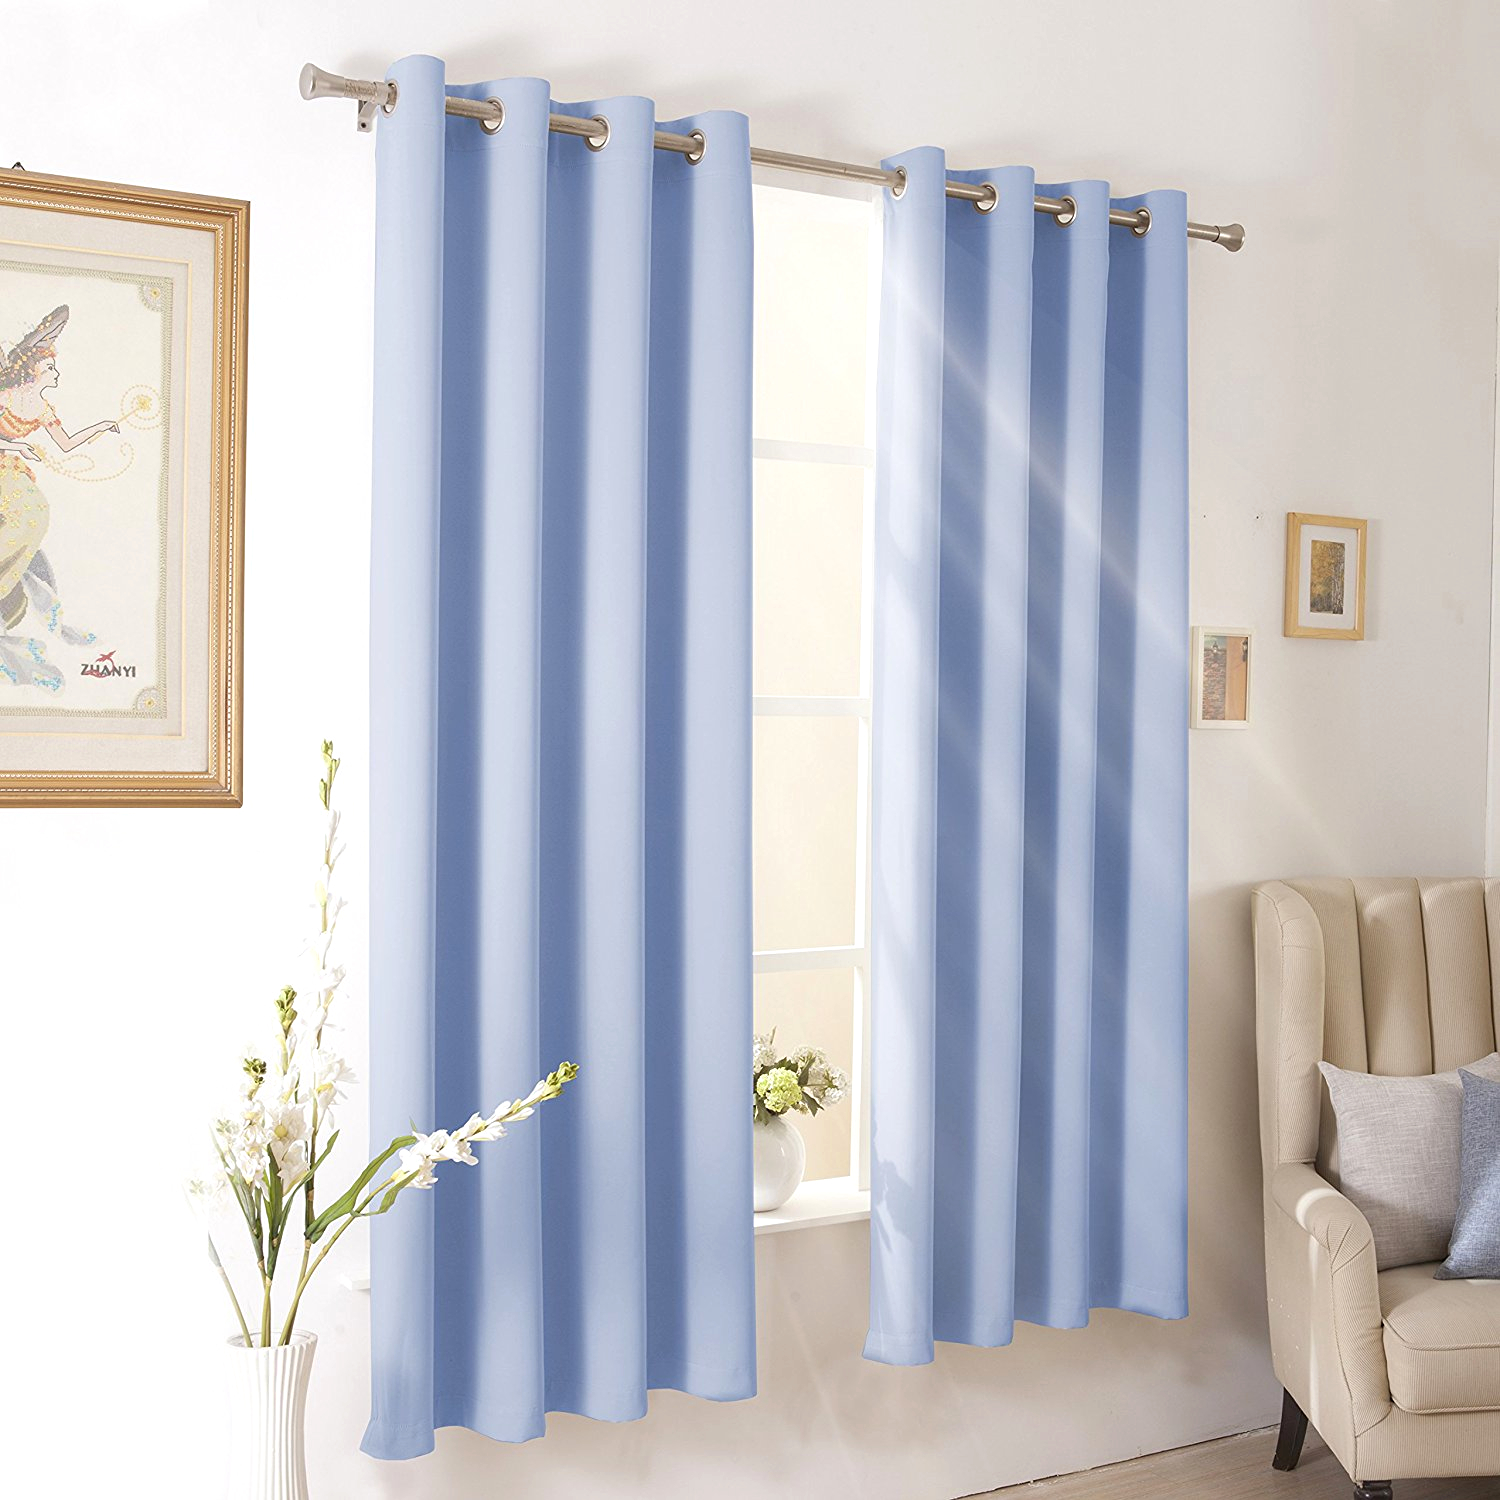 Wontex Blackout Curtains Room Darkening Thermal Insulated With Grommet For 52 X With Regard To Tuscan Thermal Backed Blackout Curtain Panel Pairs (View 20 of 30)